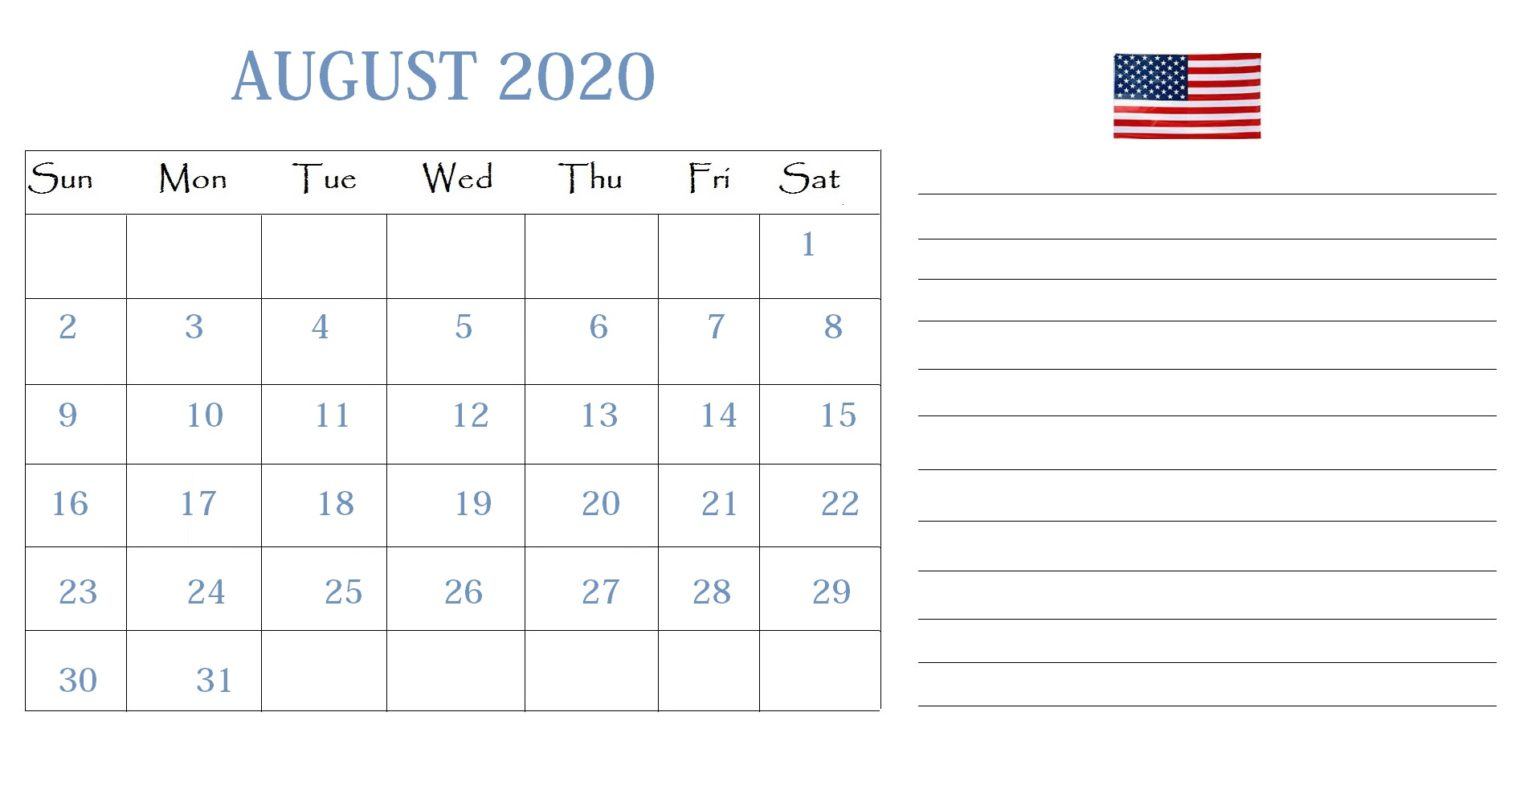 August 2020 Calendar United States